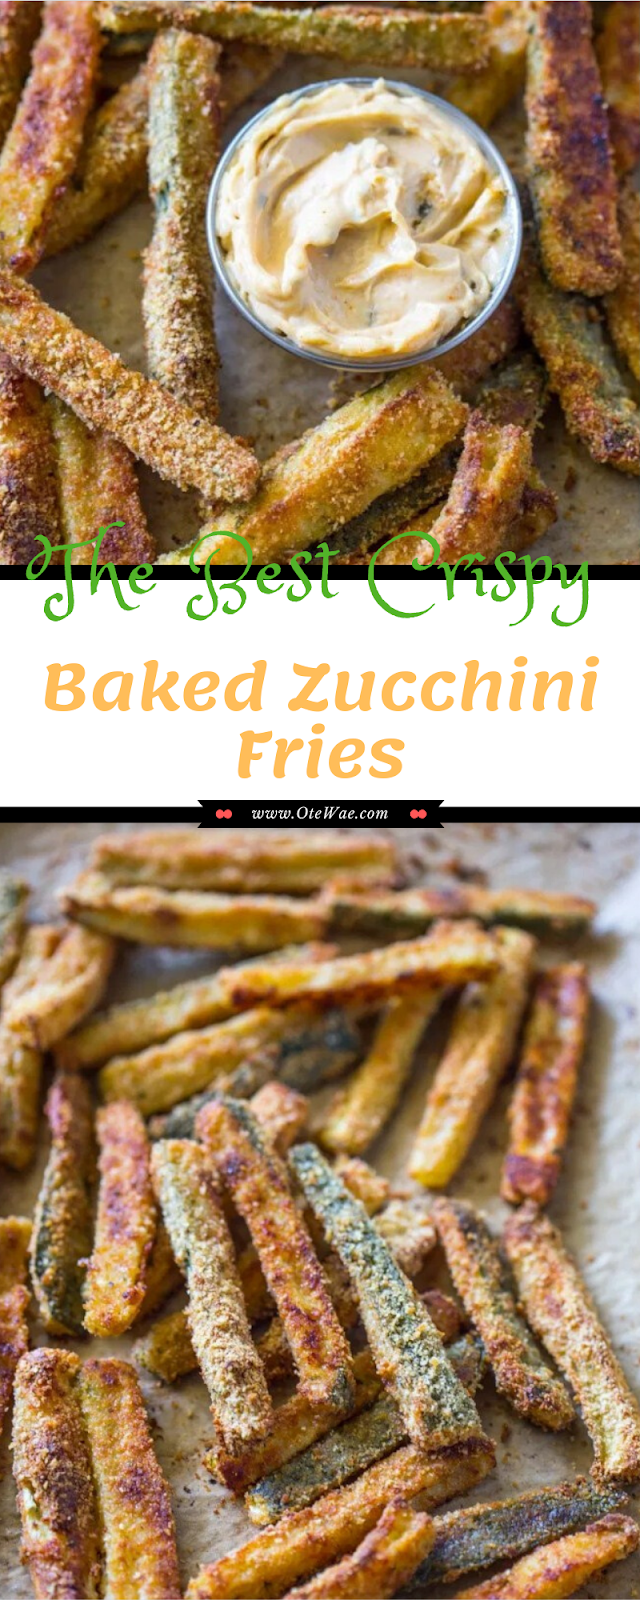 The Best Crispy Baked Zucchini Fries